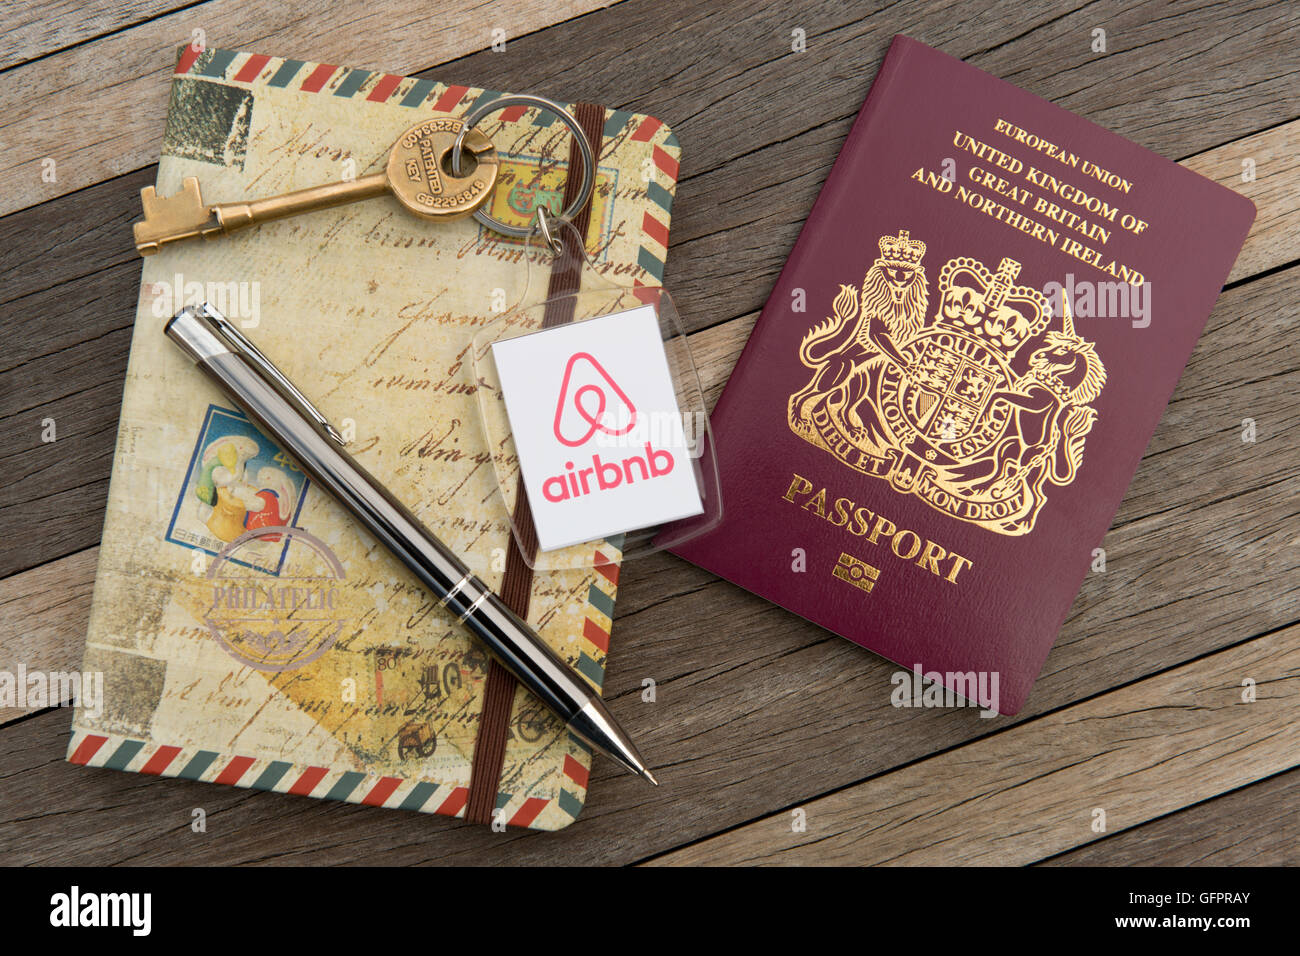 An Airbnb branded key fob along with a British passport, travel journal and pen, on a wooden table (Editorial use - Stock Image